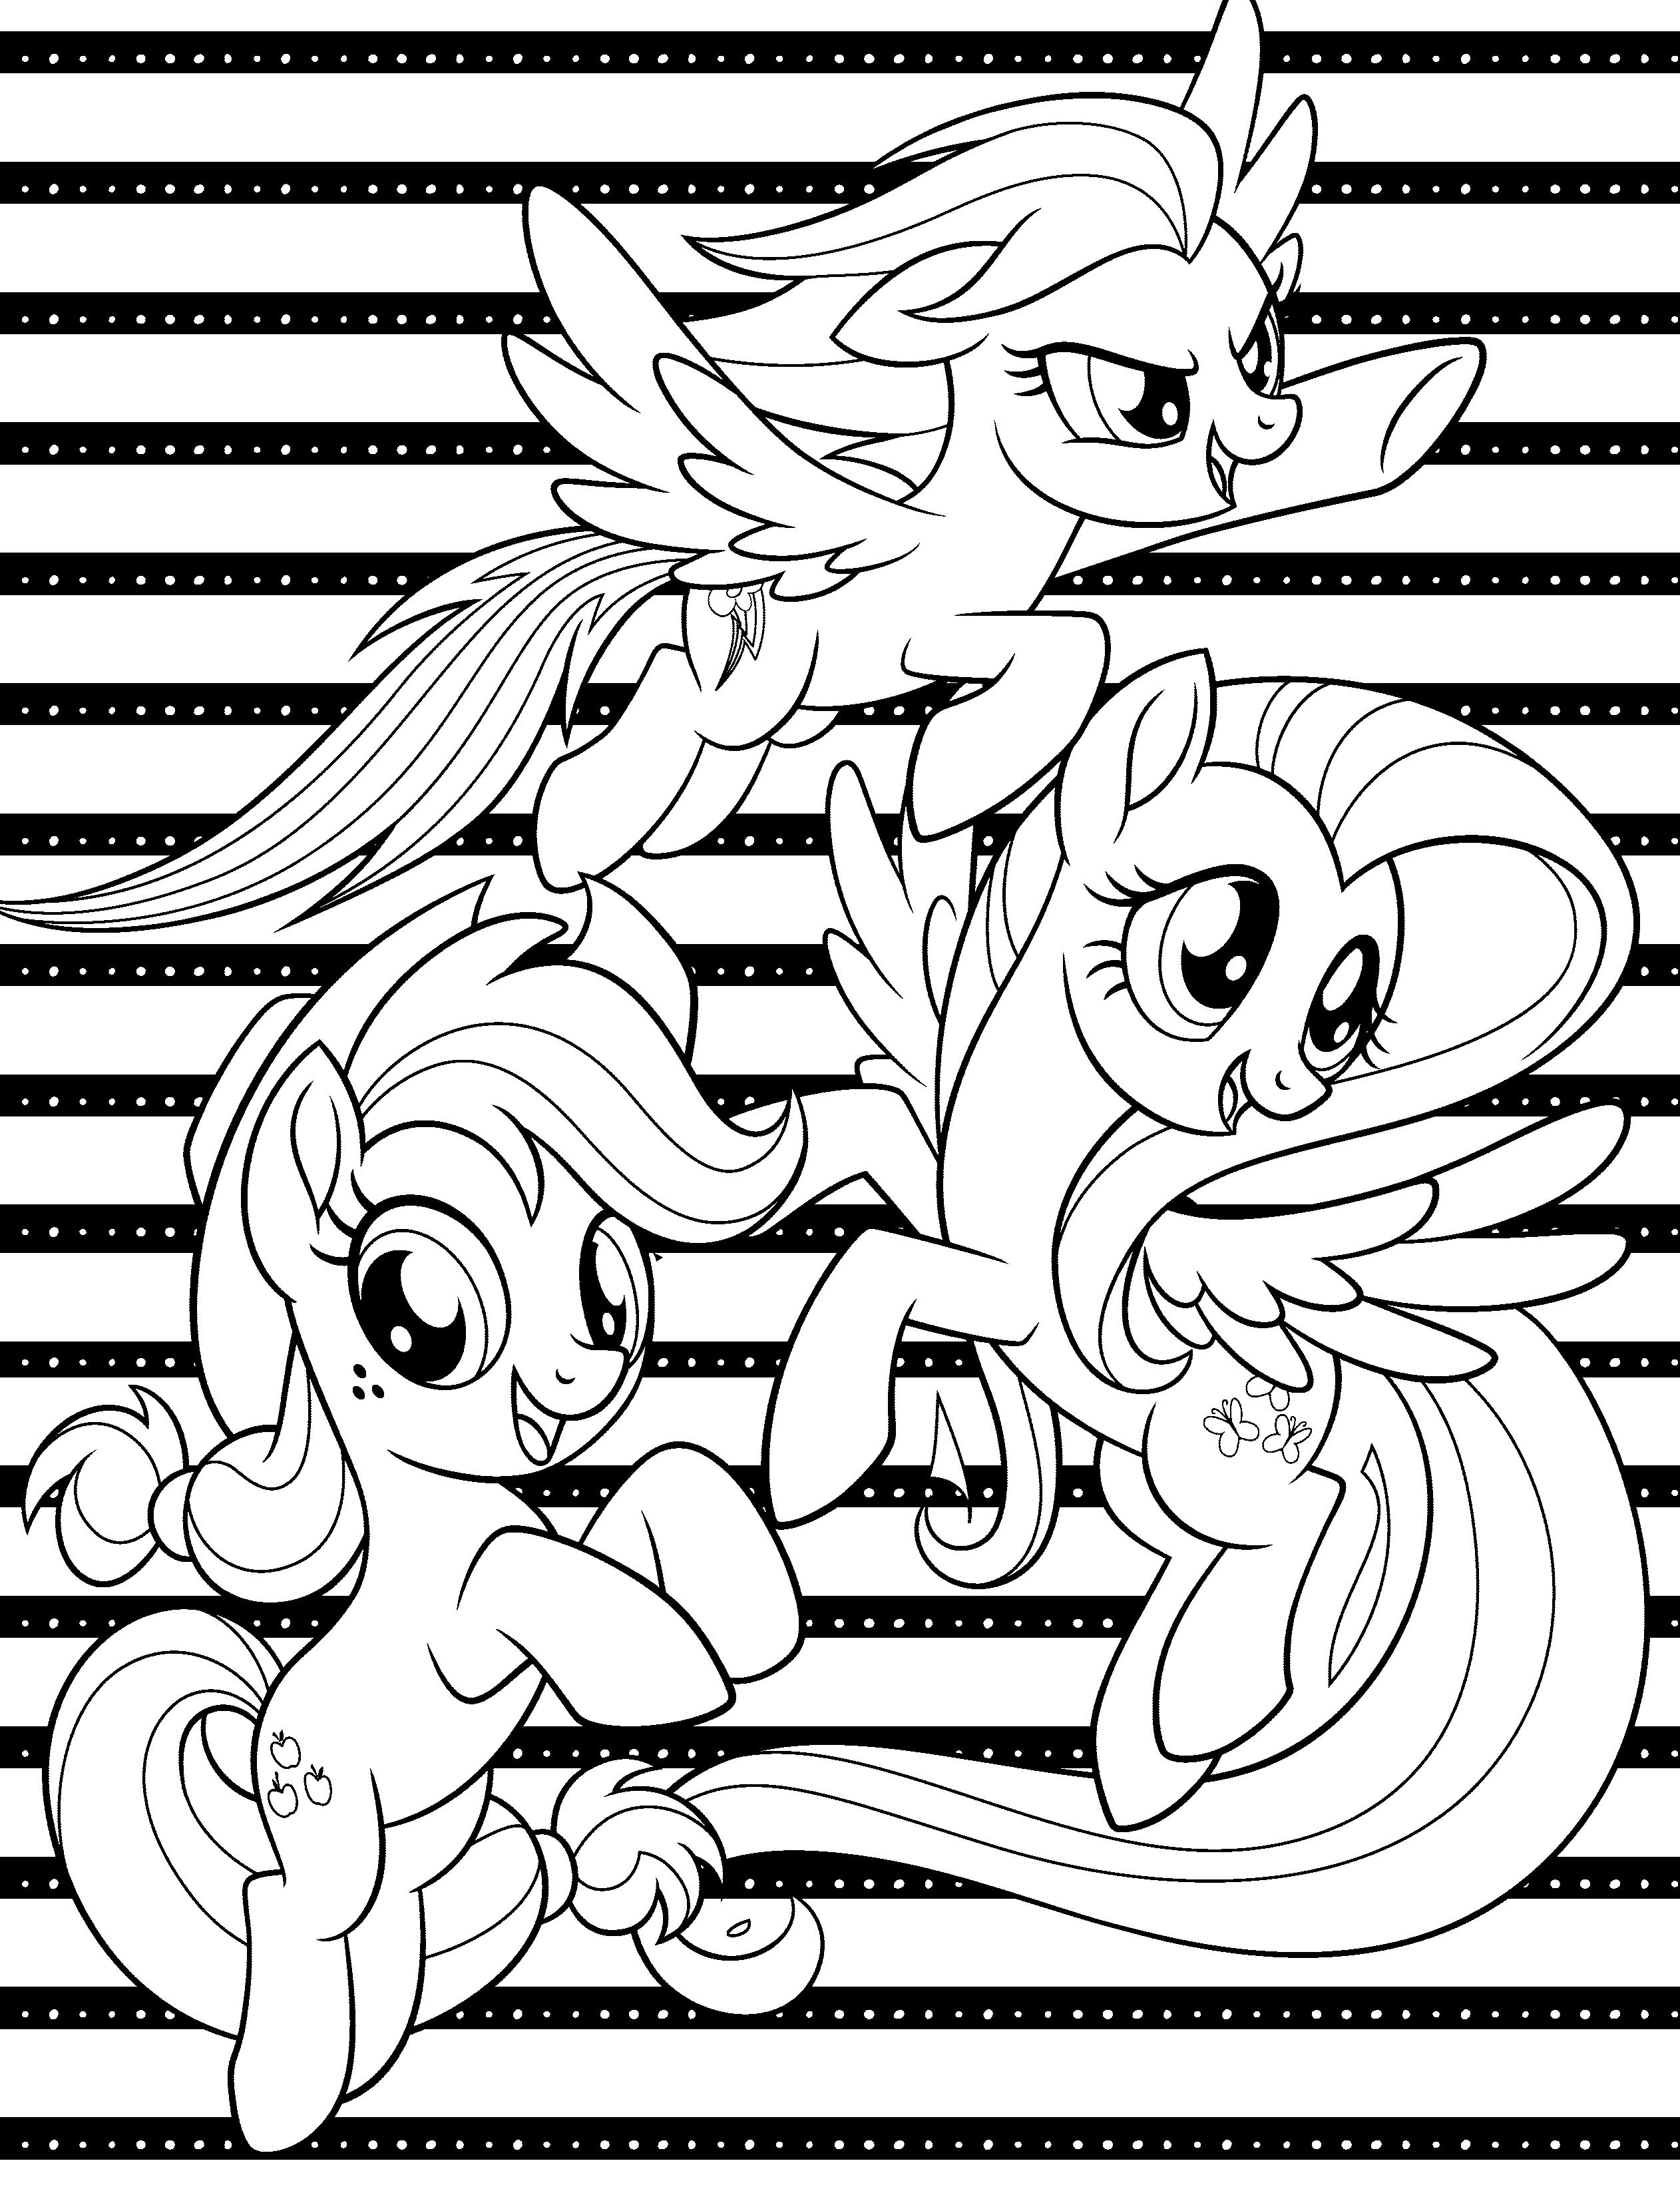 tempest pony coloring page pin by anita krajewska on kolorowanki kolorowanki tempest pony page coloring